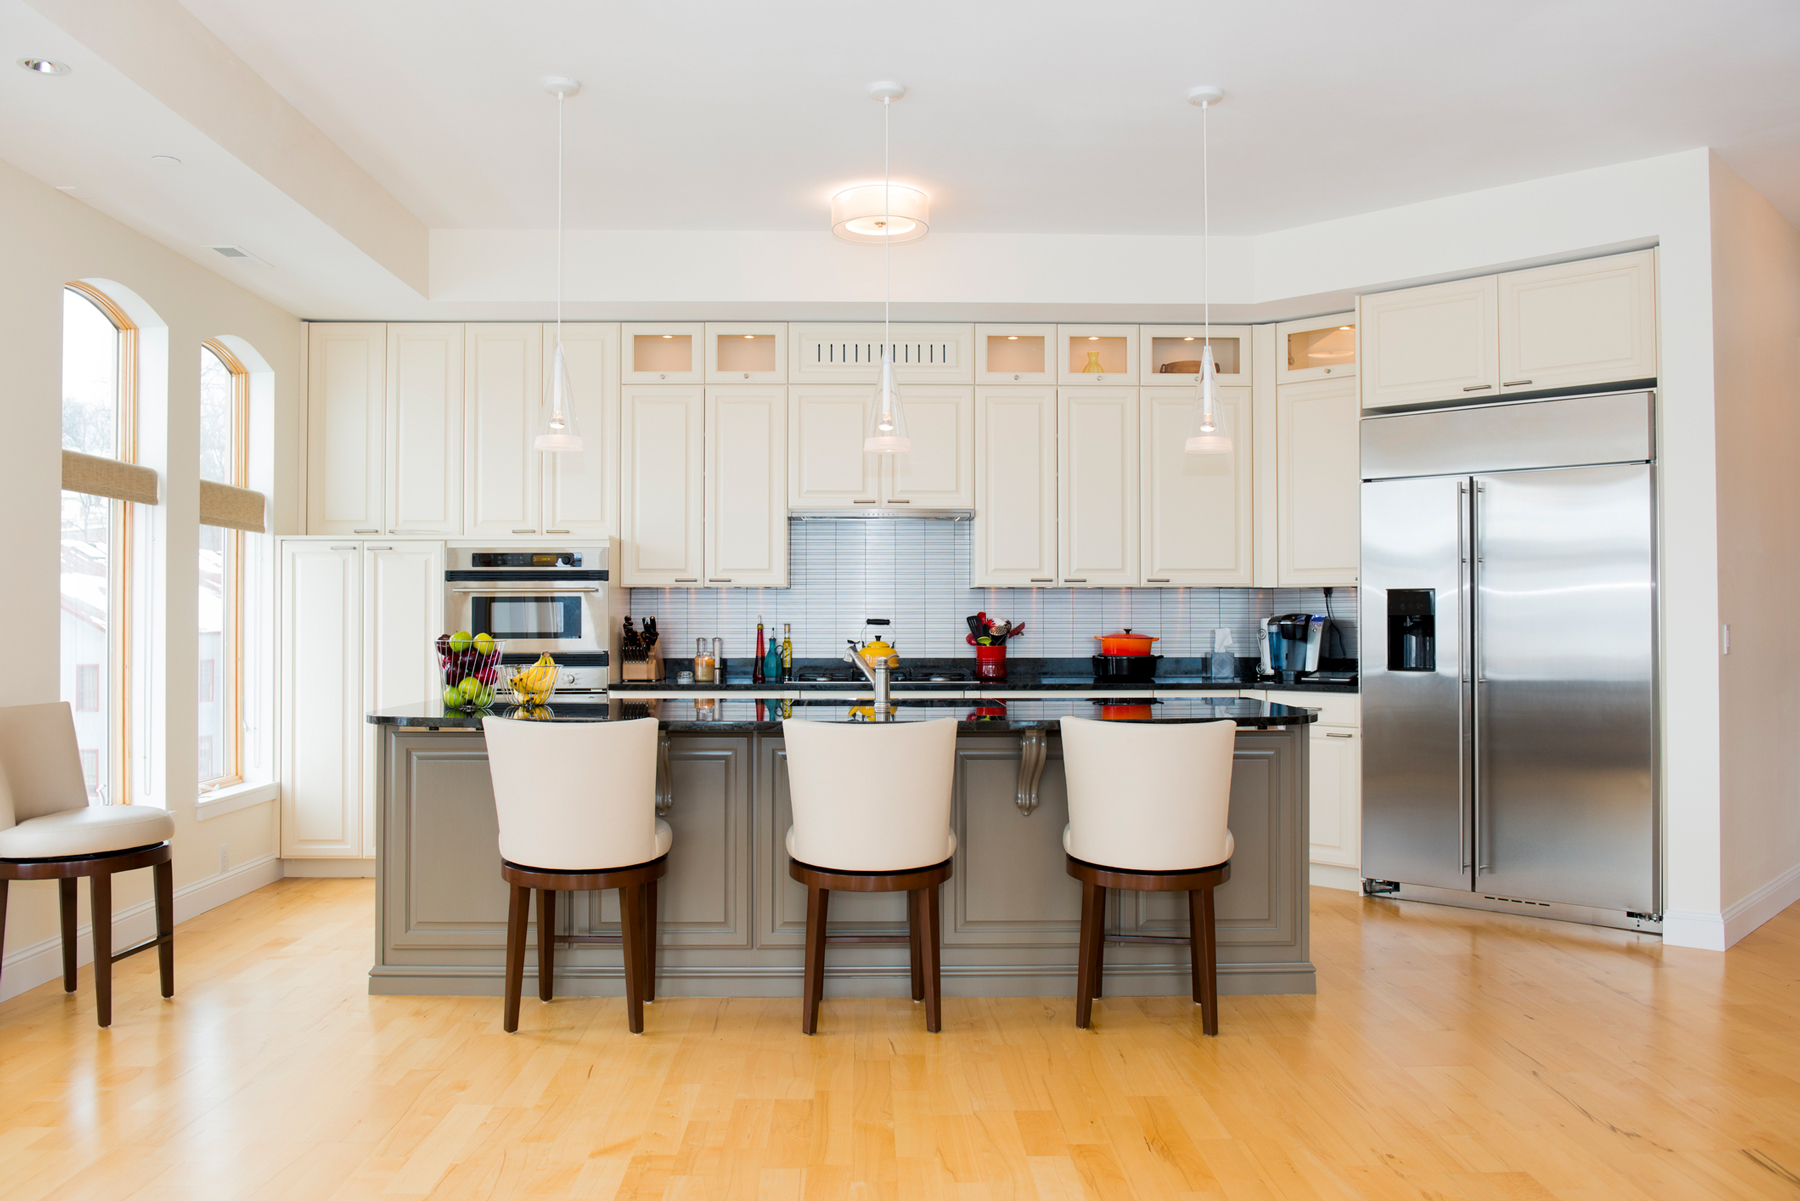 Replace Or Refinish Kitchen Cabinets: Kitchen Decorating